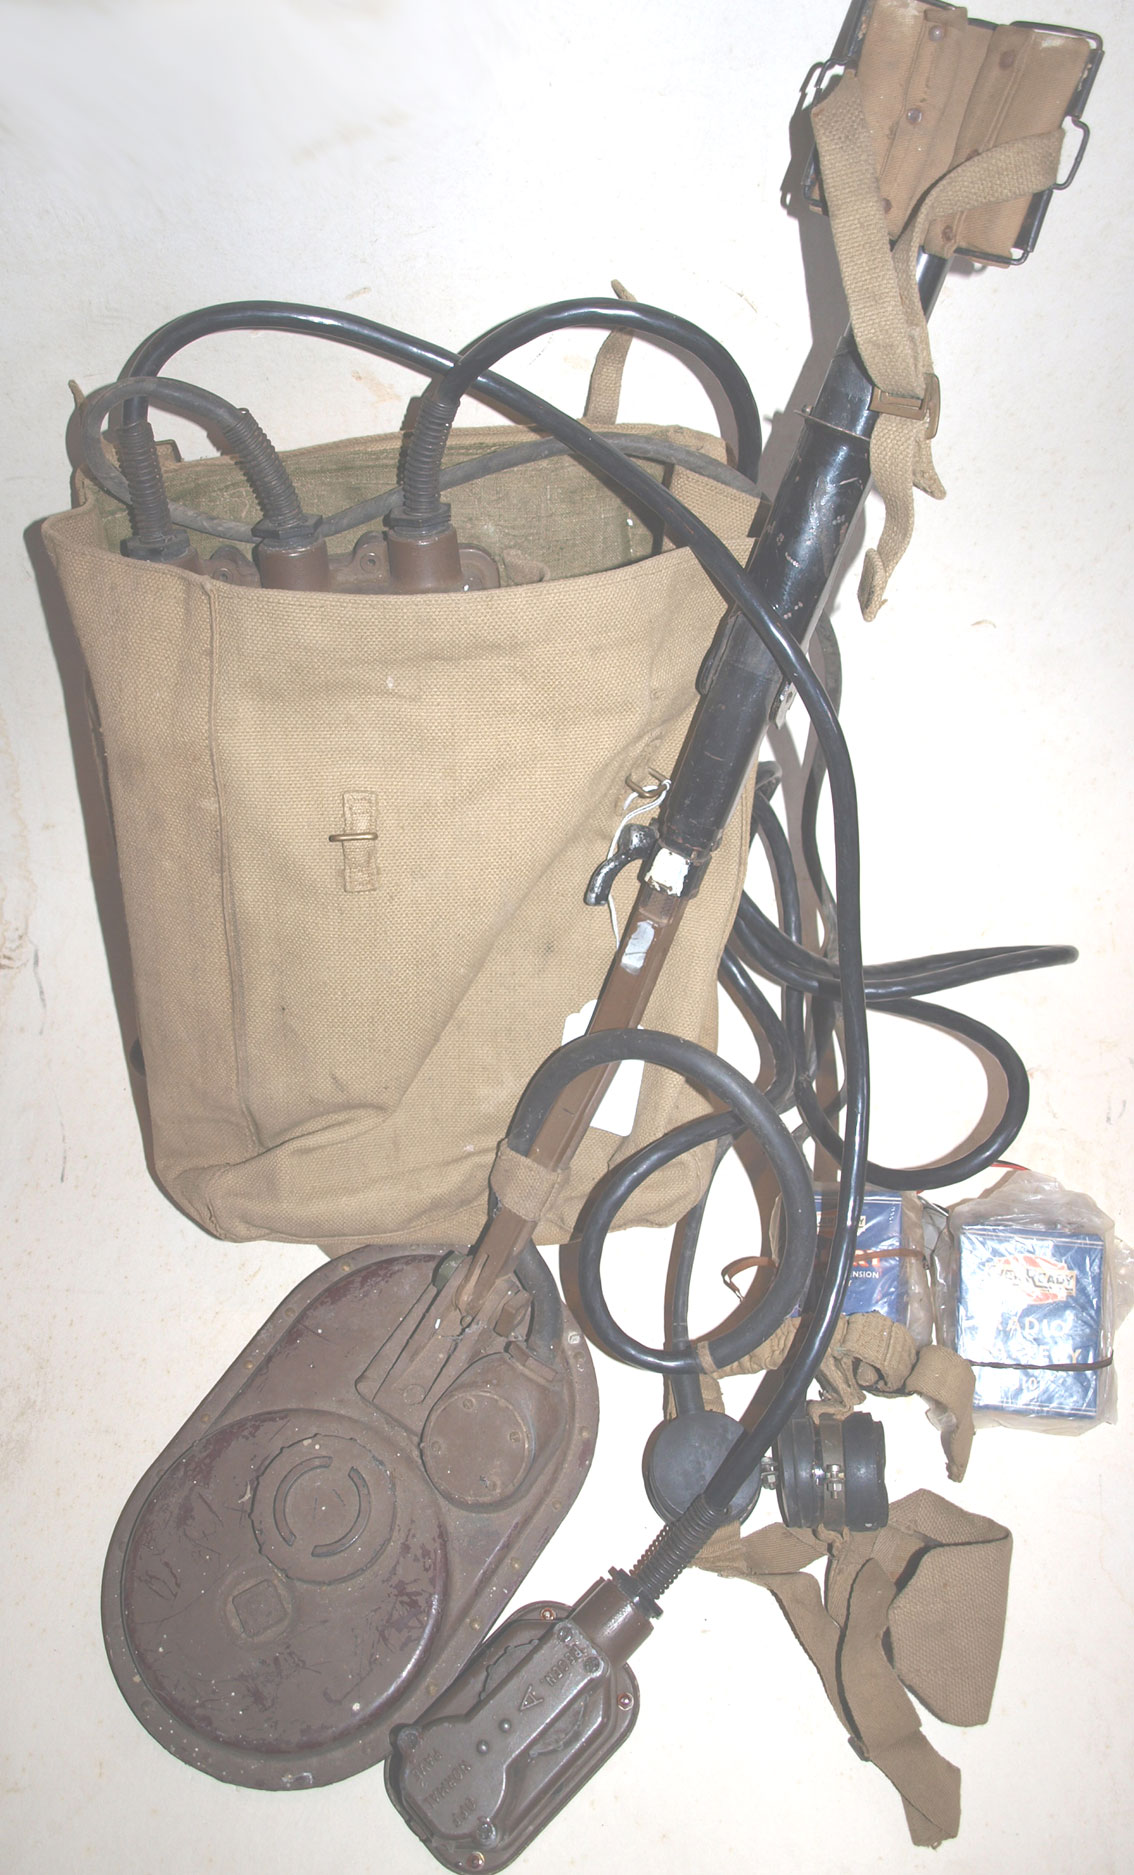 4A WW2 Mine Detector in back pack RESERVED FOR CUSTOMER